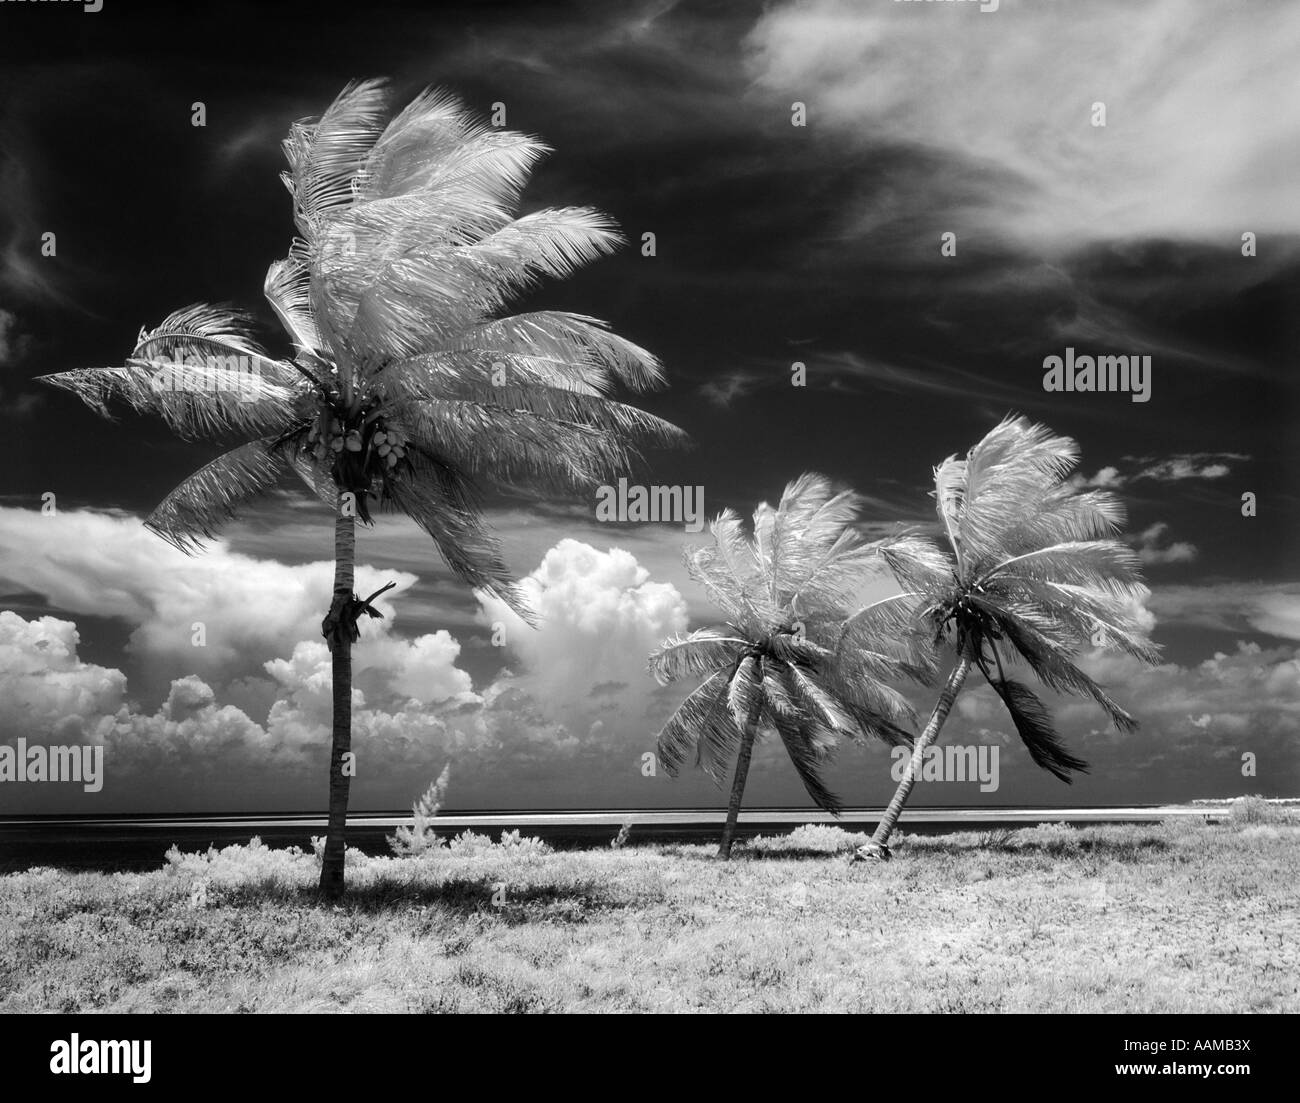 1960s TROPICAL SCENIC PALM TREES BLOWING IN STORM FLORIDA KEYS - Stock Image